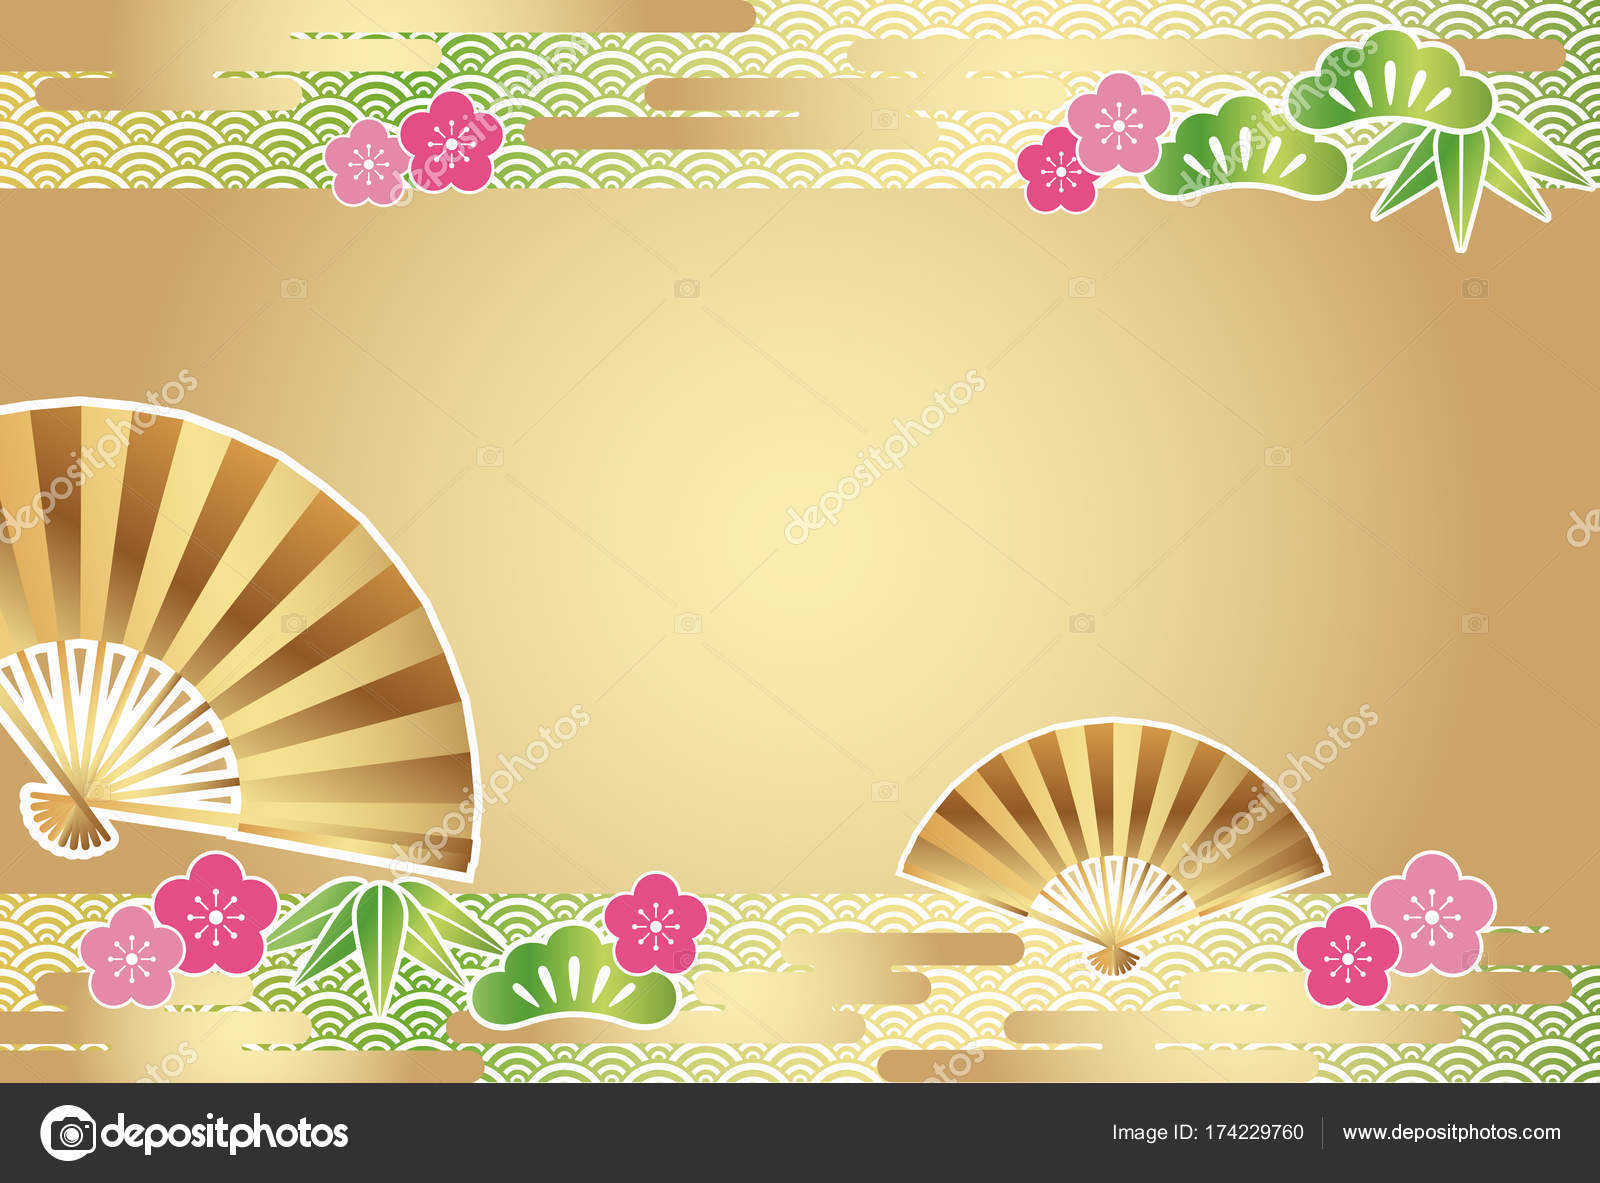 a new year card template with traditionally auspicious items in